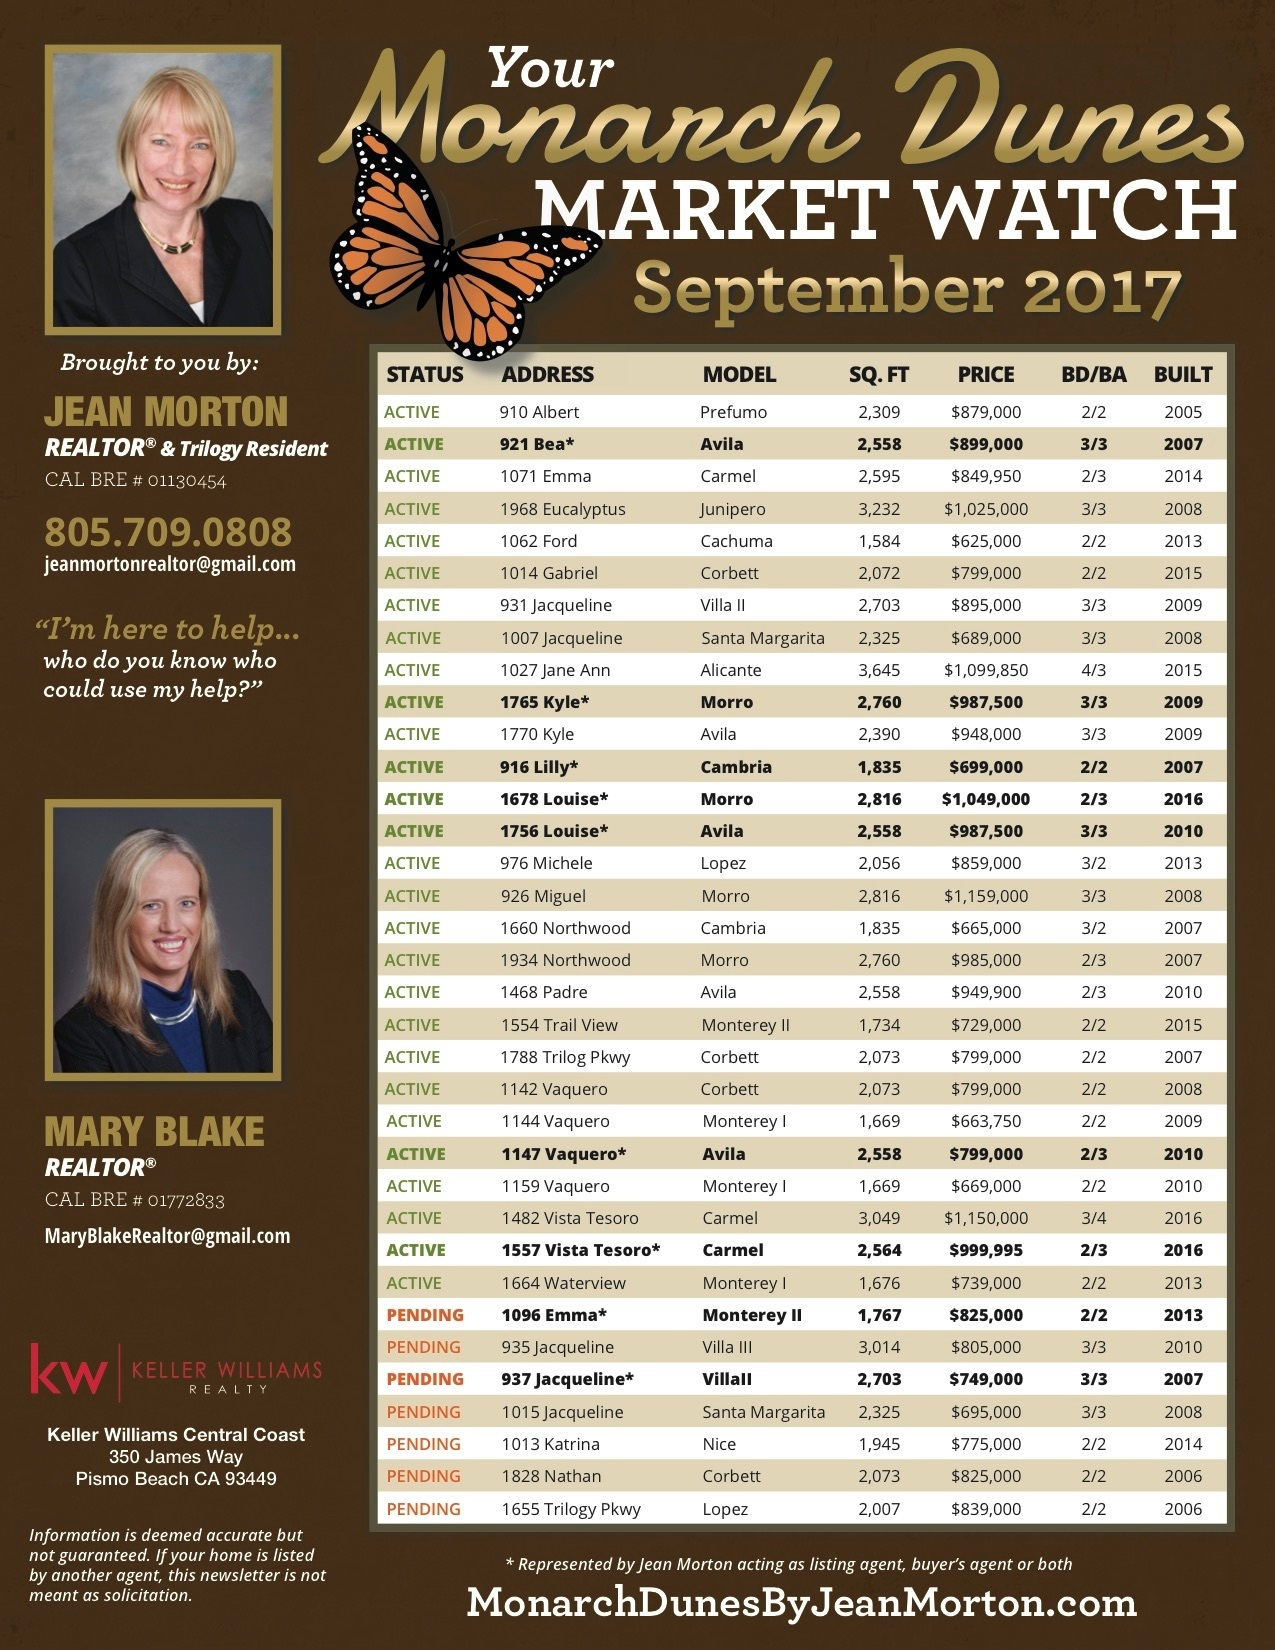 Market Watch Sept 2017